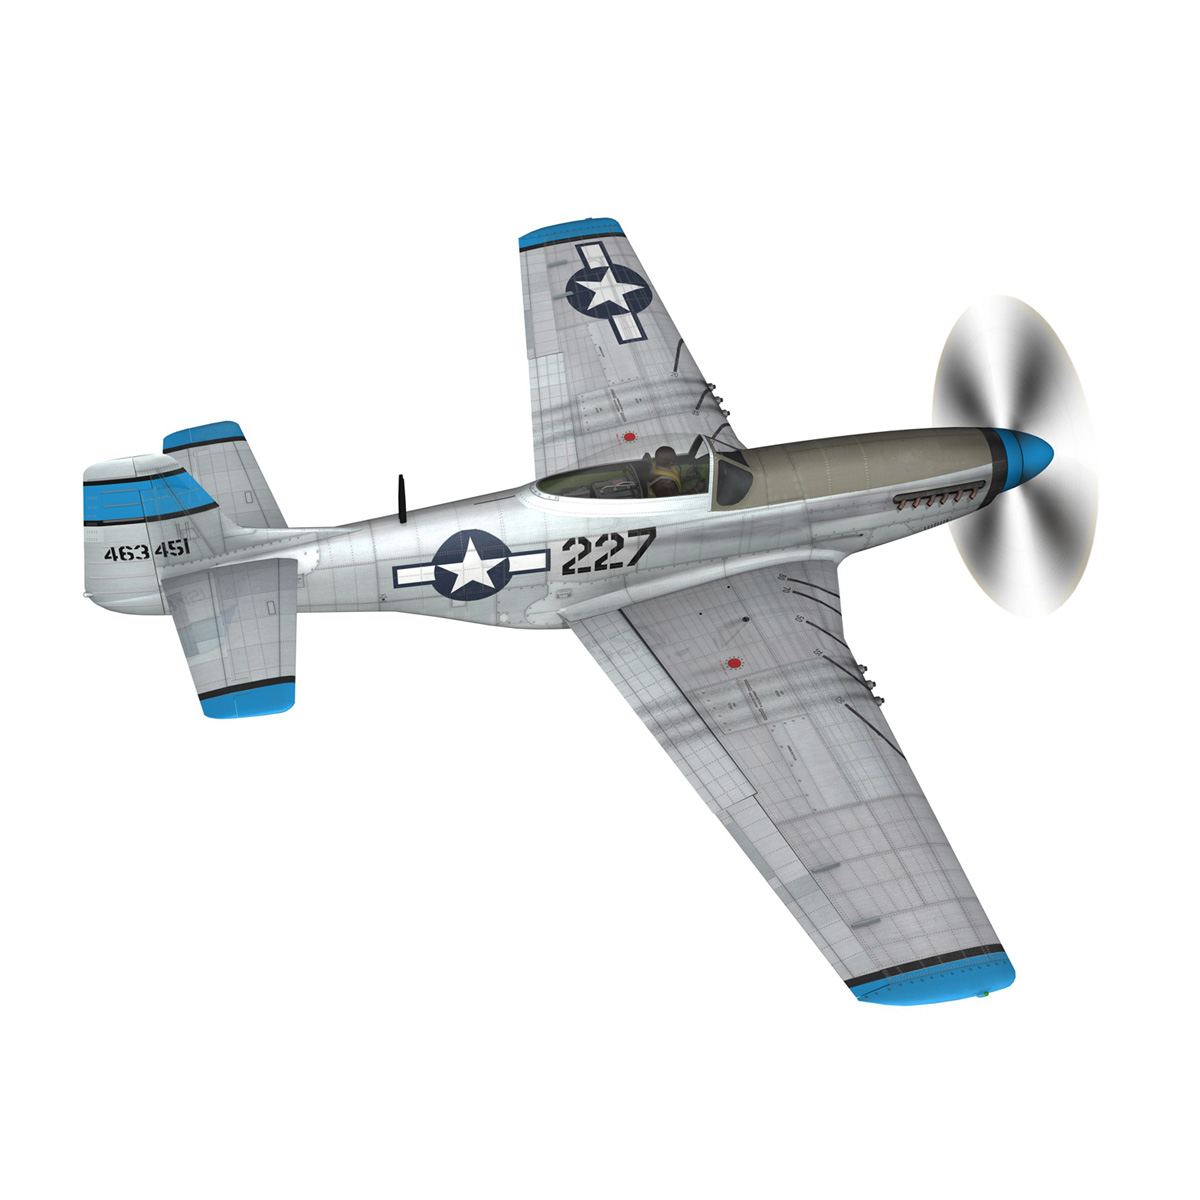 north american p-51d – mustang – mary alyce 3d model 3ds fbx c4d lwo obj 267572